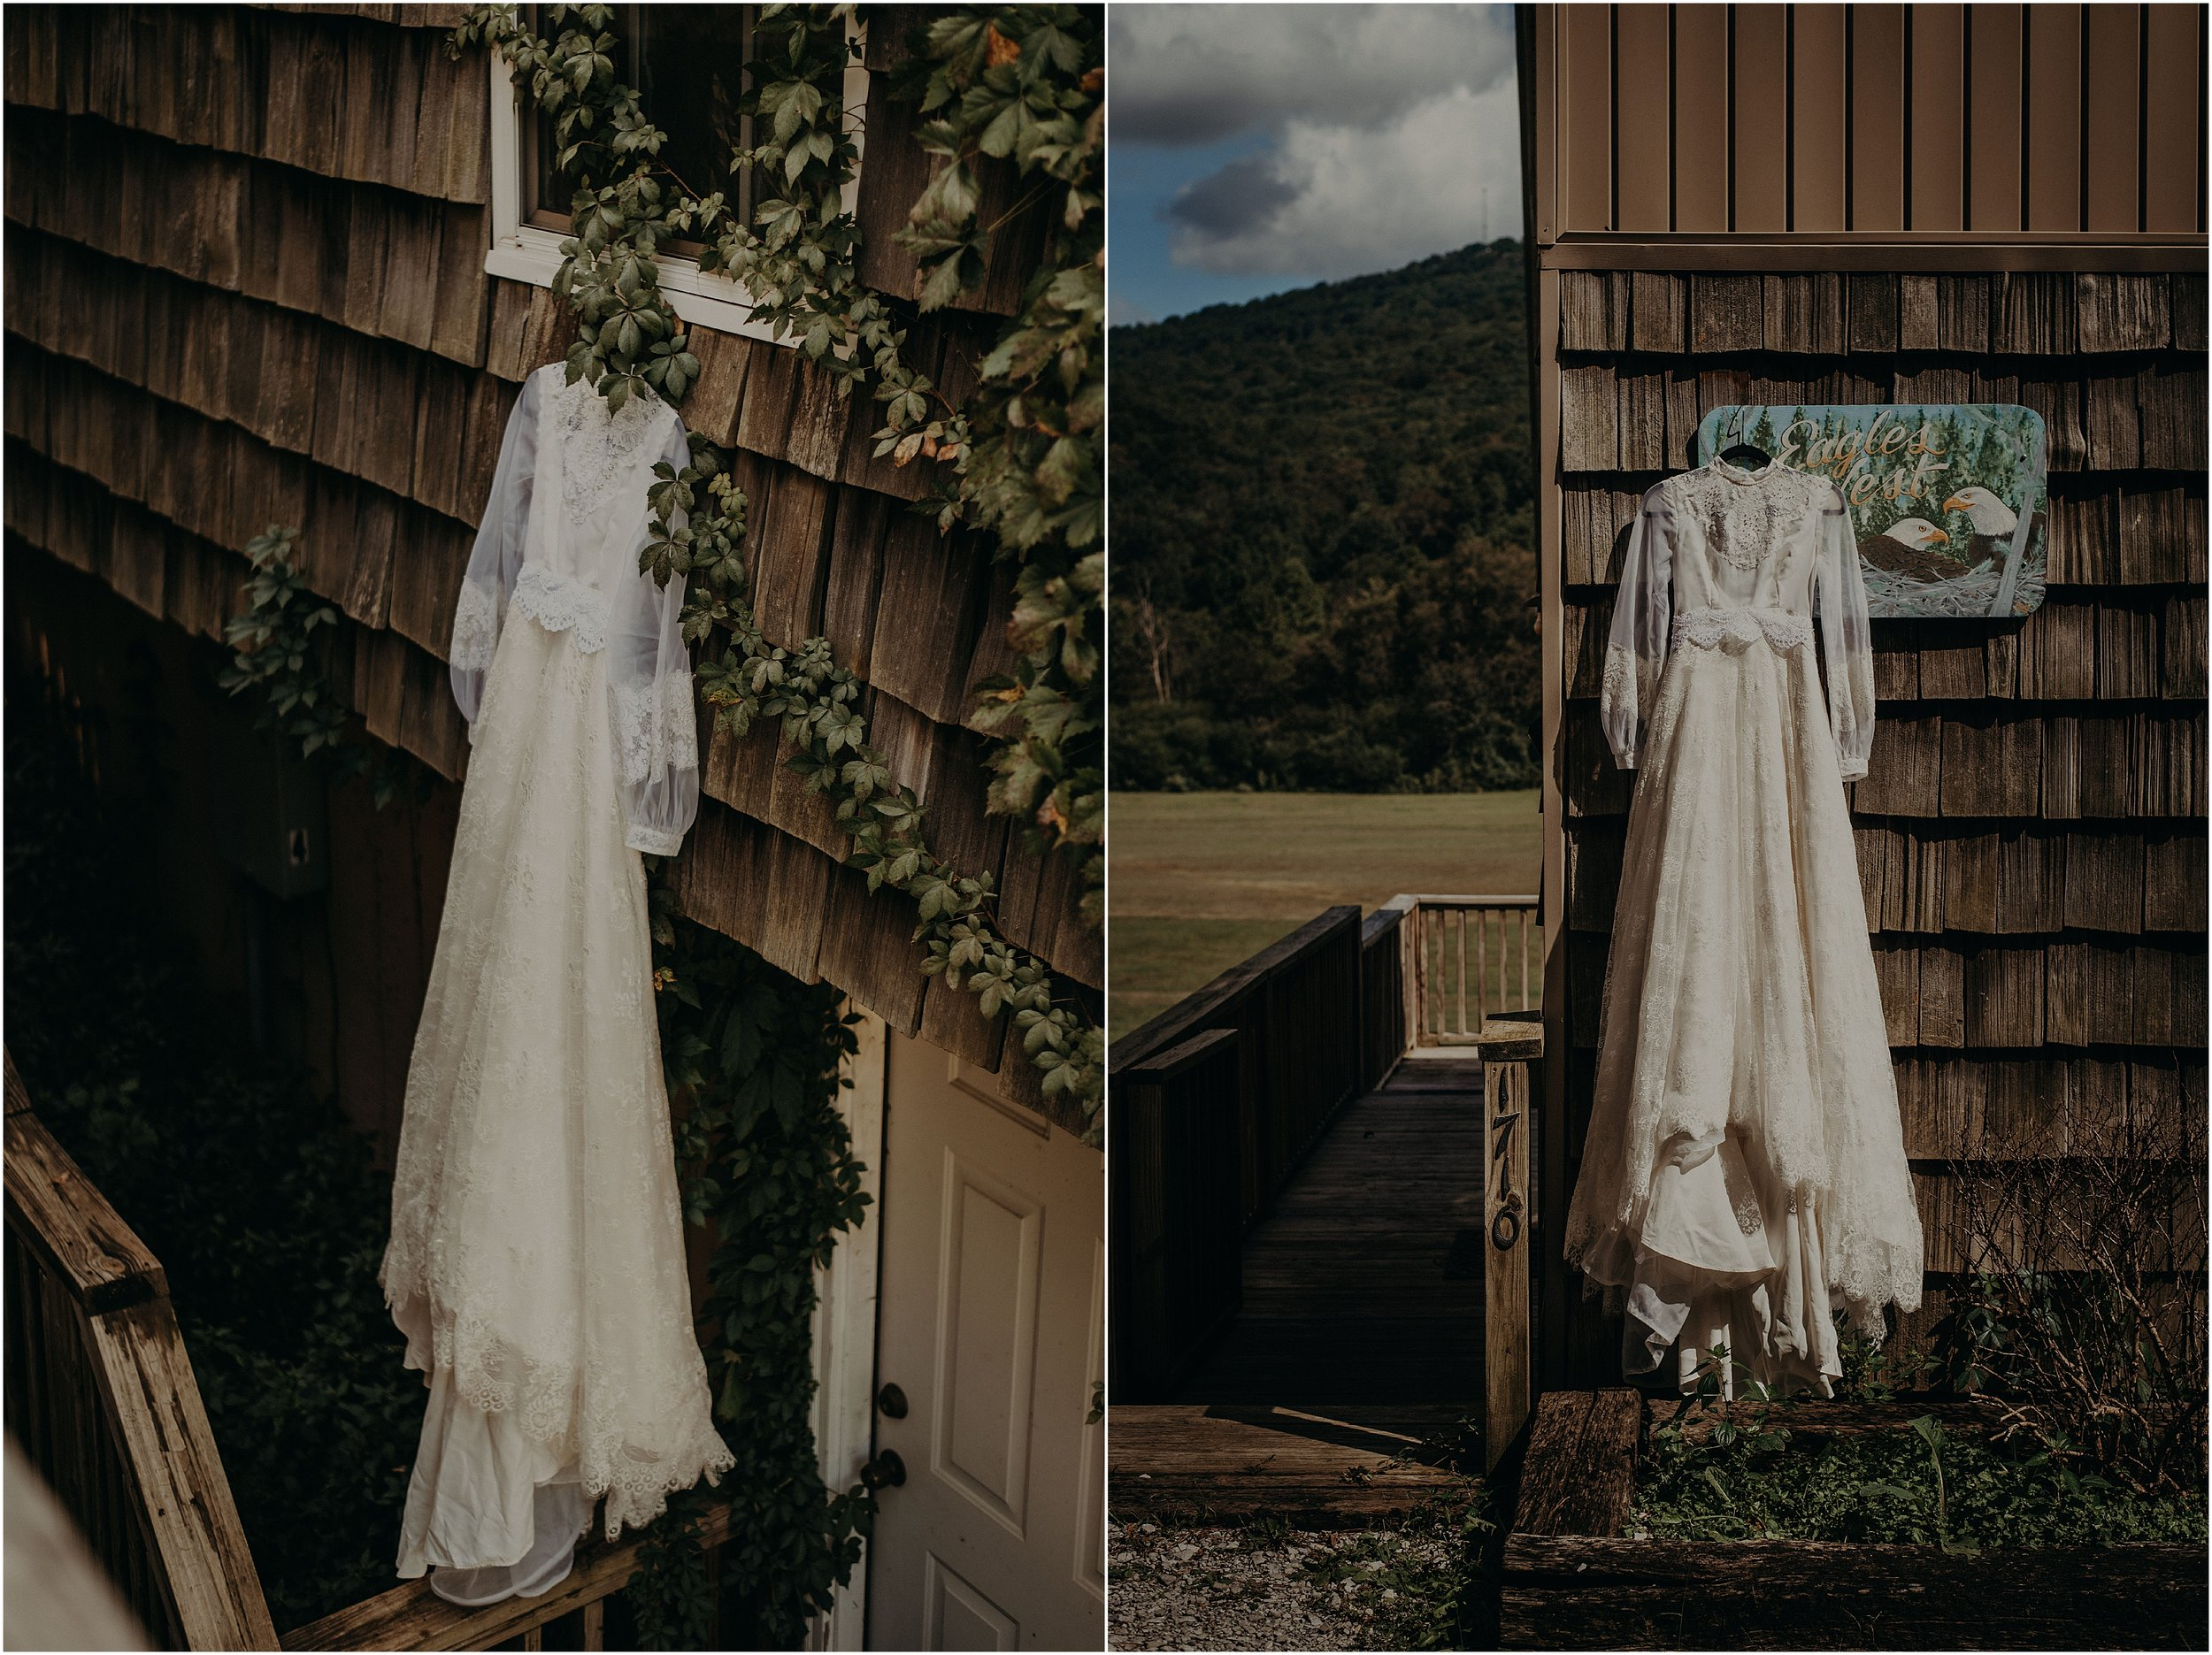 Vintage thrifted gown hanging on the cabin on Lookout Mountain, Tennessee